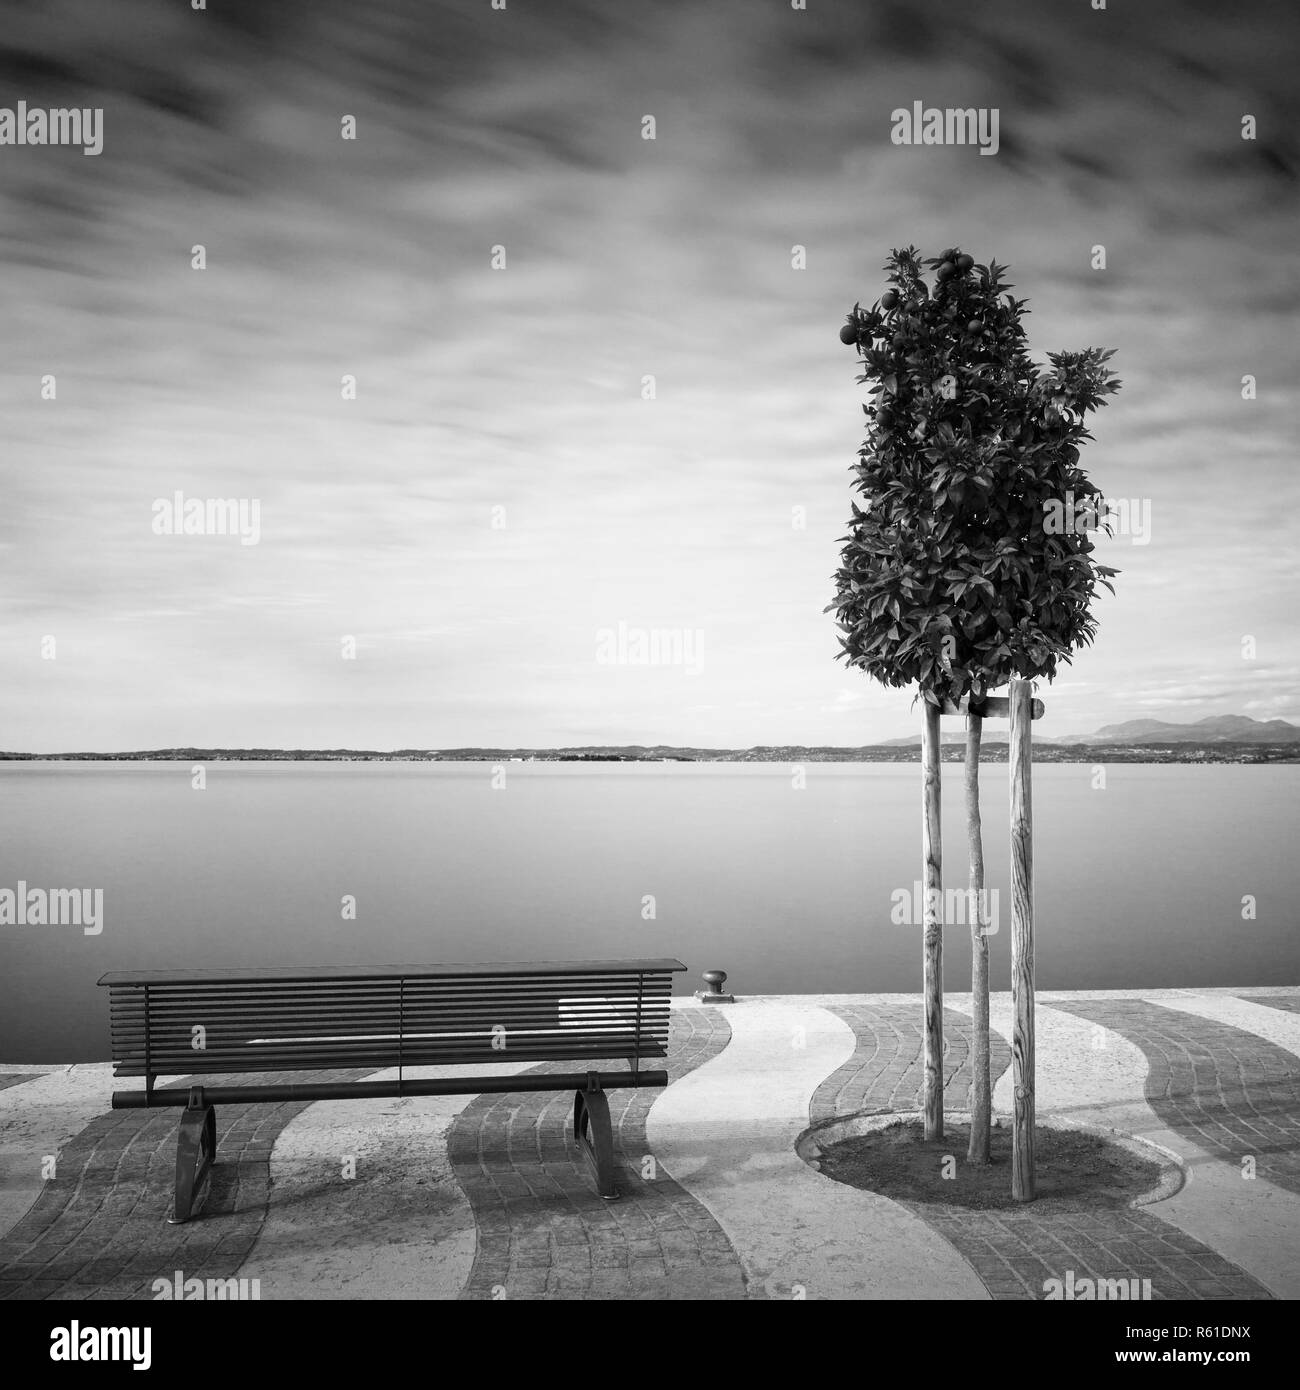 waterfront on lake garda,italy,with trees and bench - Stock Image